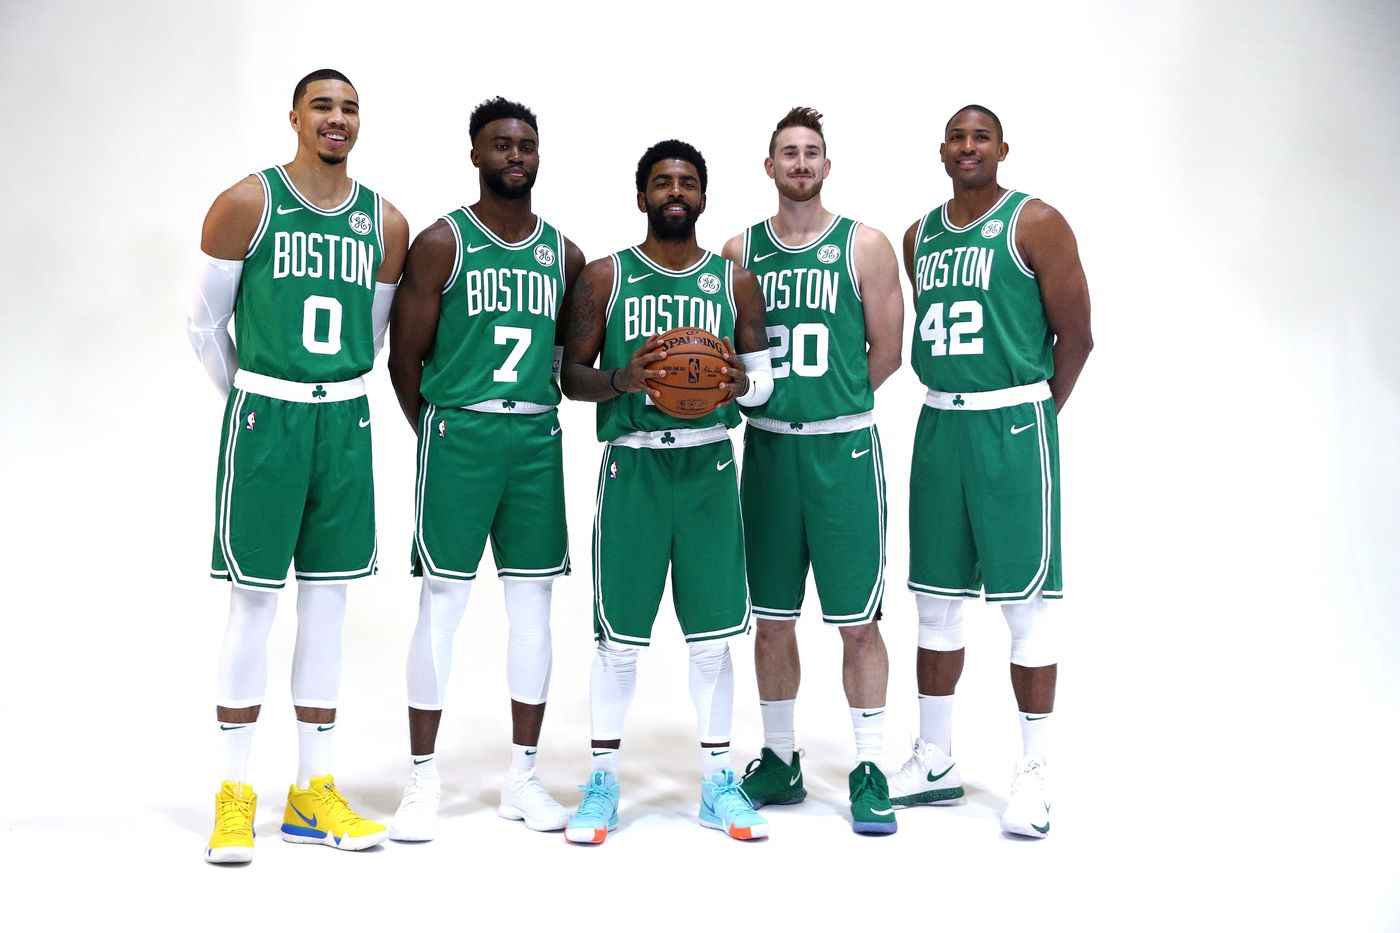 461687c72 Cashing in for a star  The curious parallels of the Celtics trade for Kevin  Garnett and a potential trade for Anthony Davis - CelticsBlog